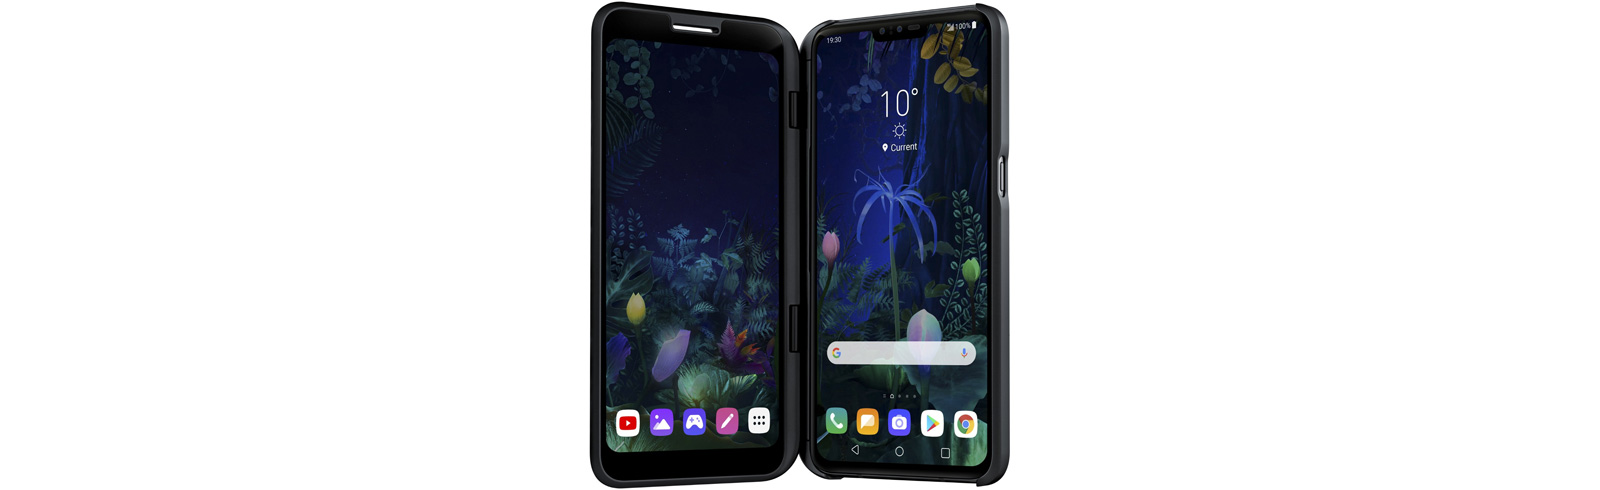 LG V50 ThinQ 5G is announced with a dual-screen option